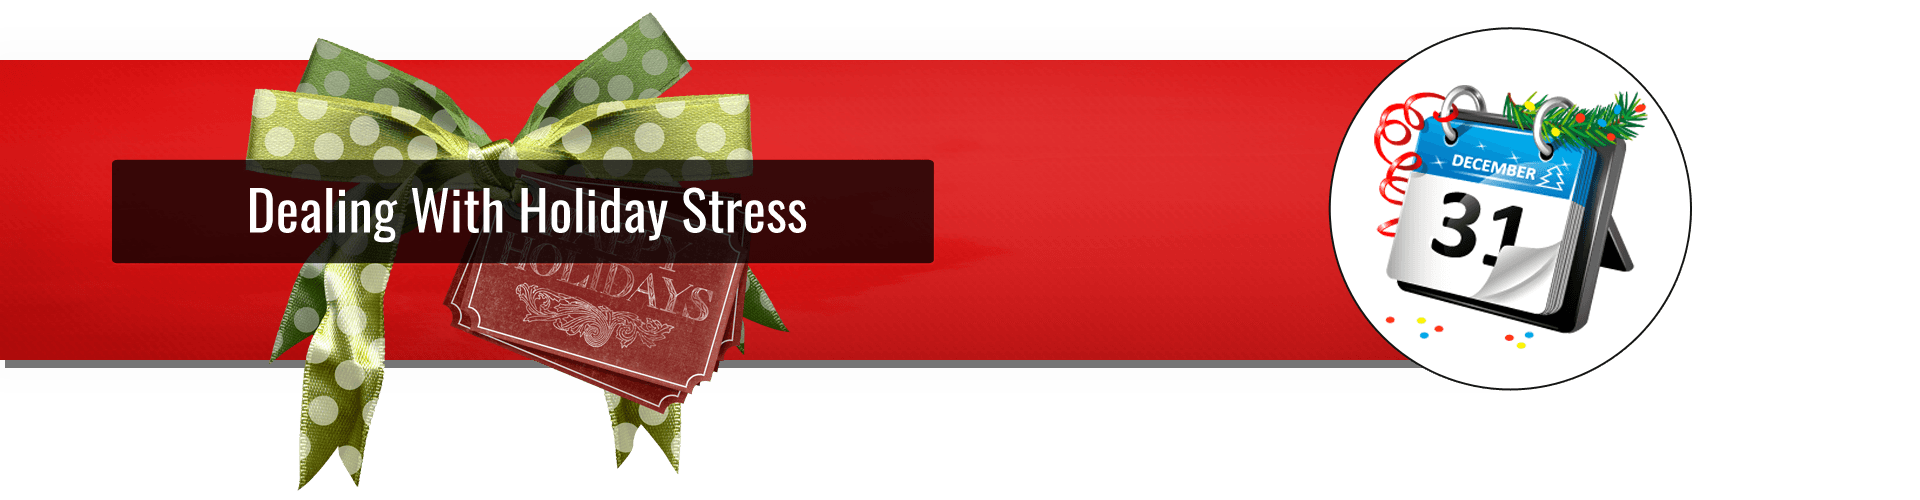 Dealing With Holiday Stress